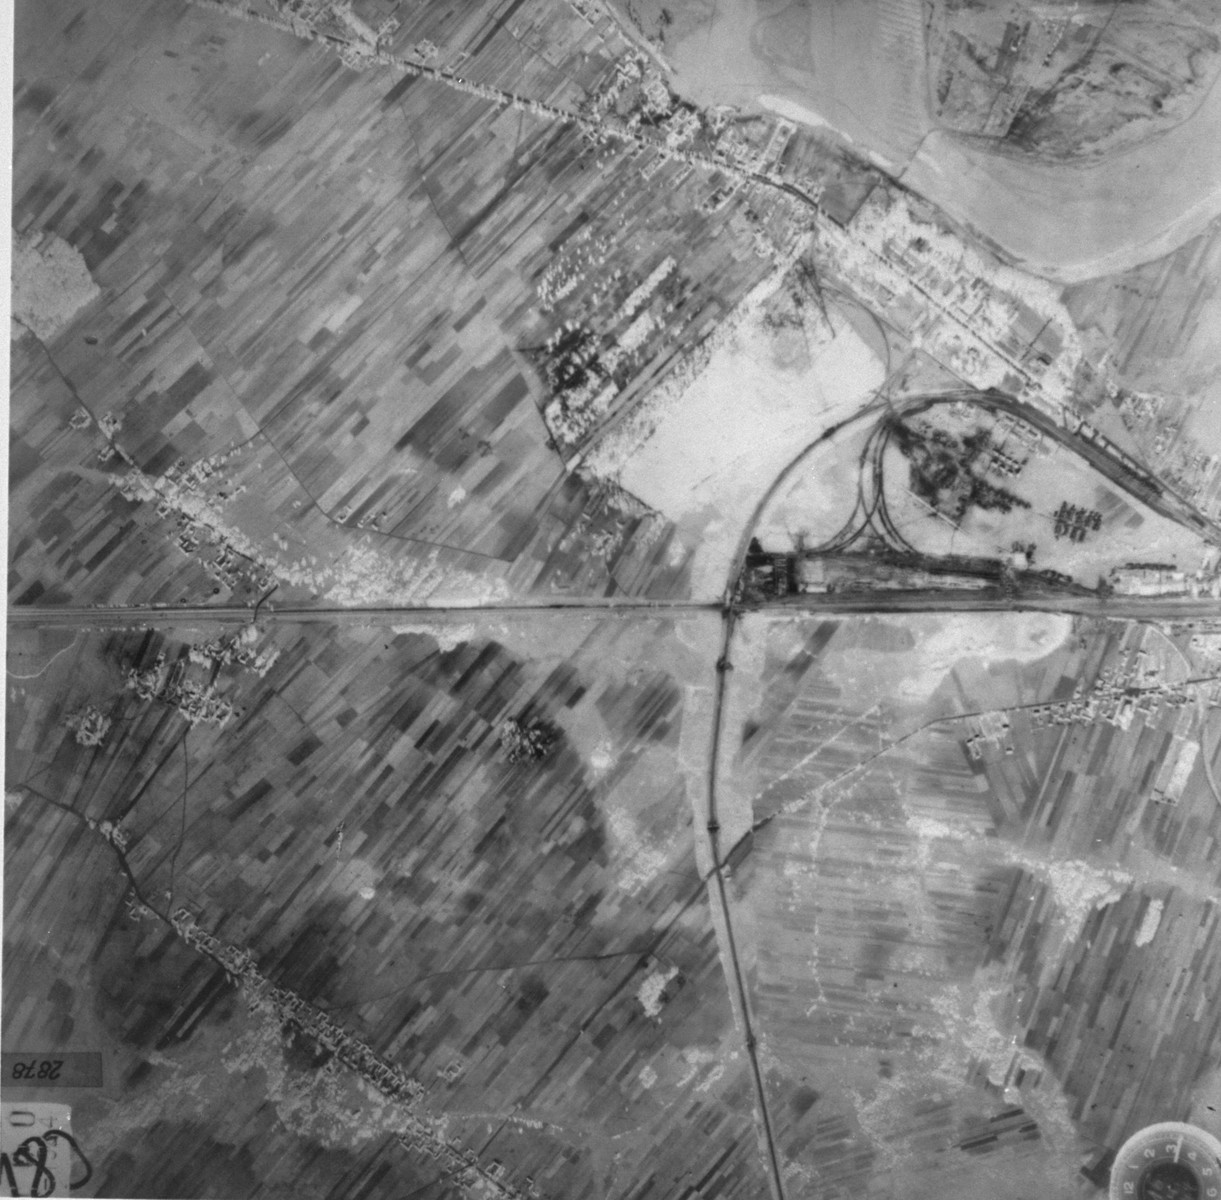 An aerial photo of the area around the Treblinka concentration camp taken by the German air force.